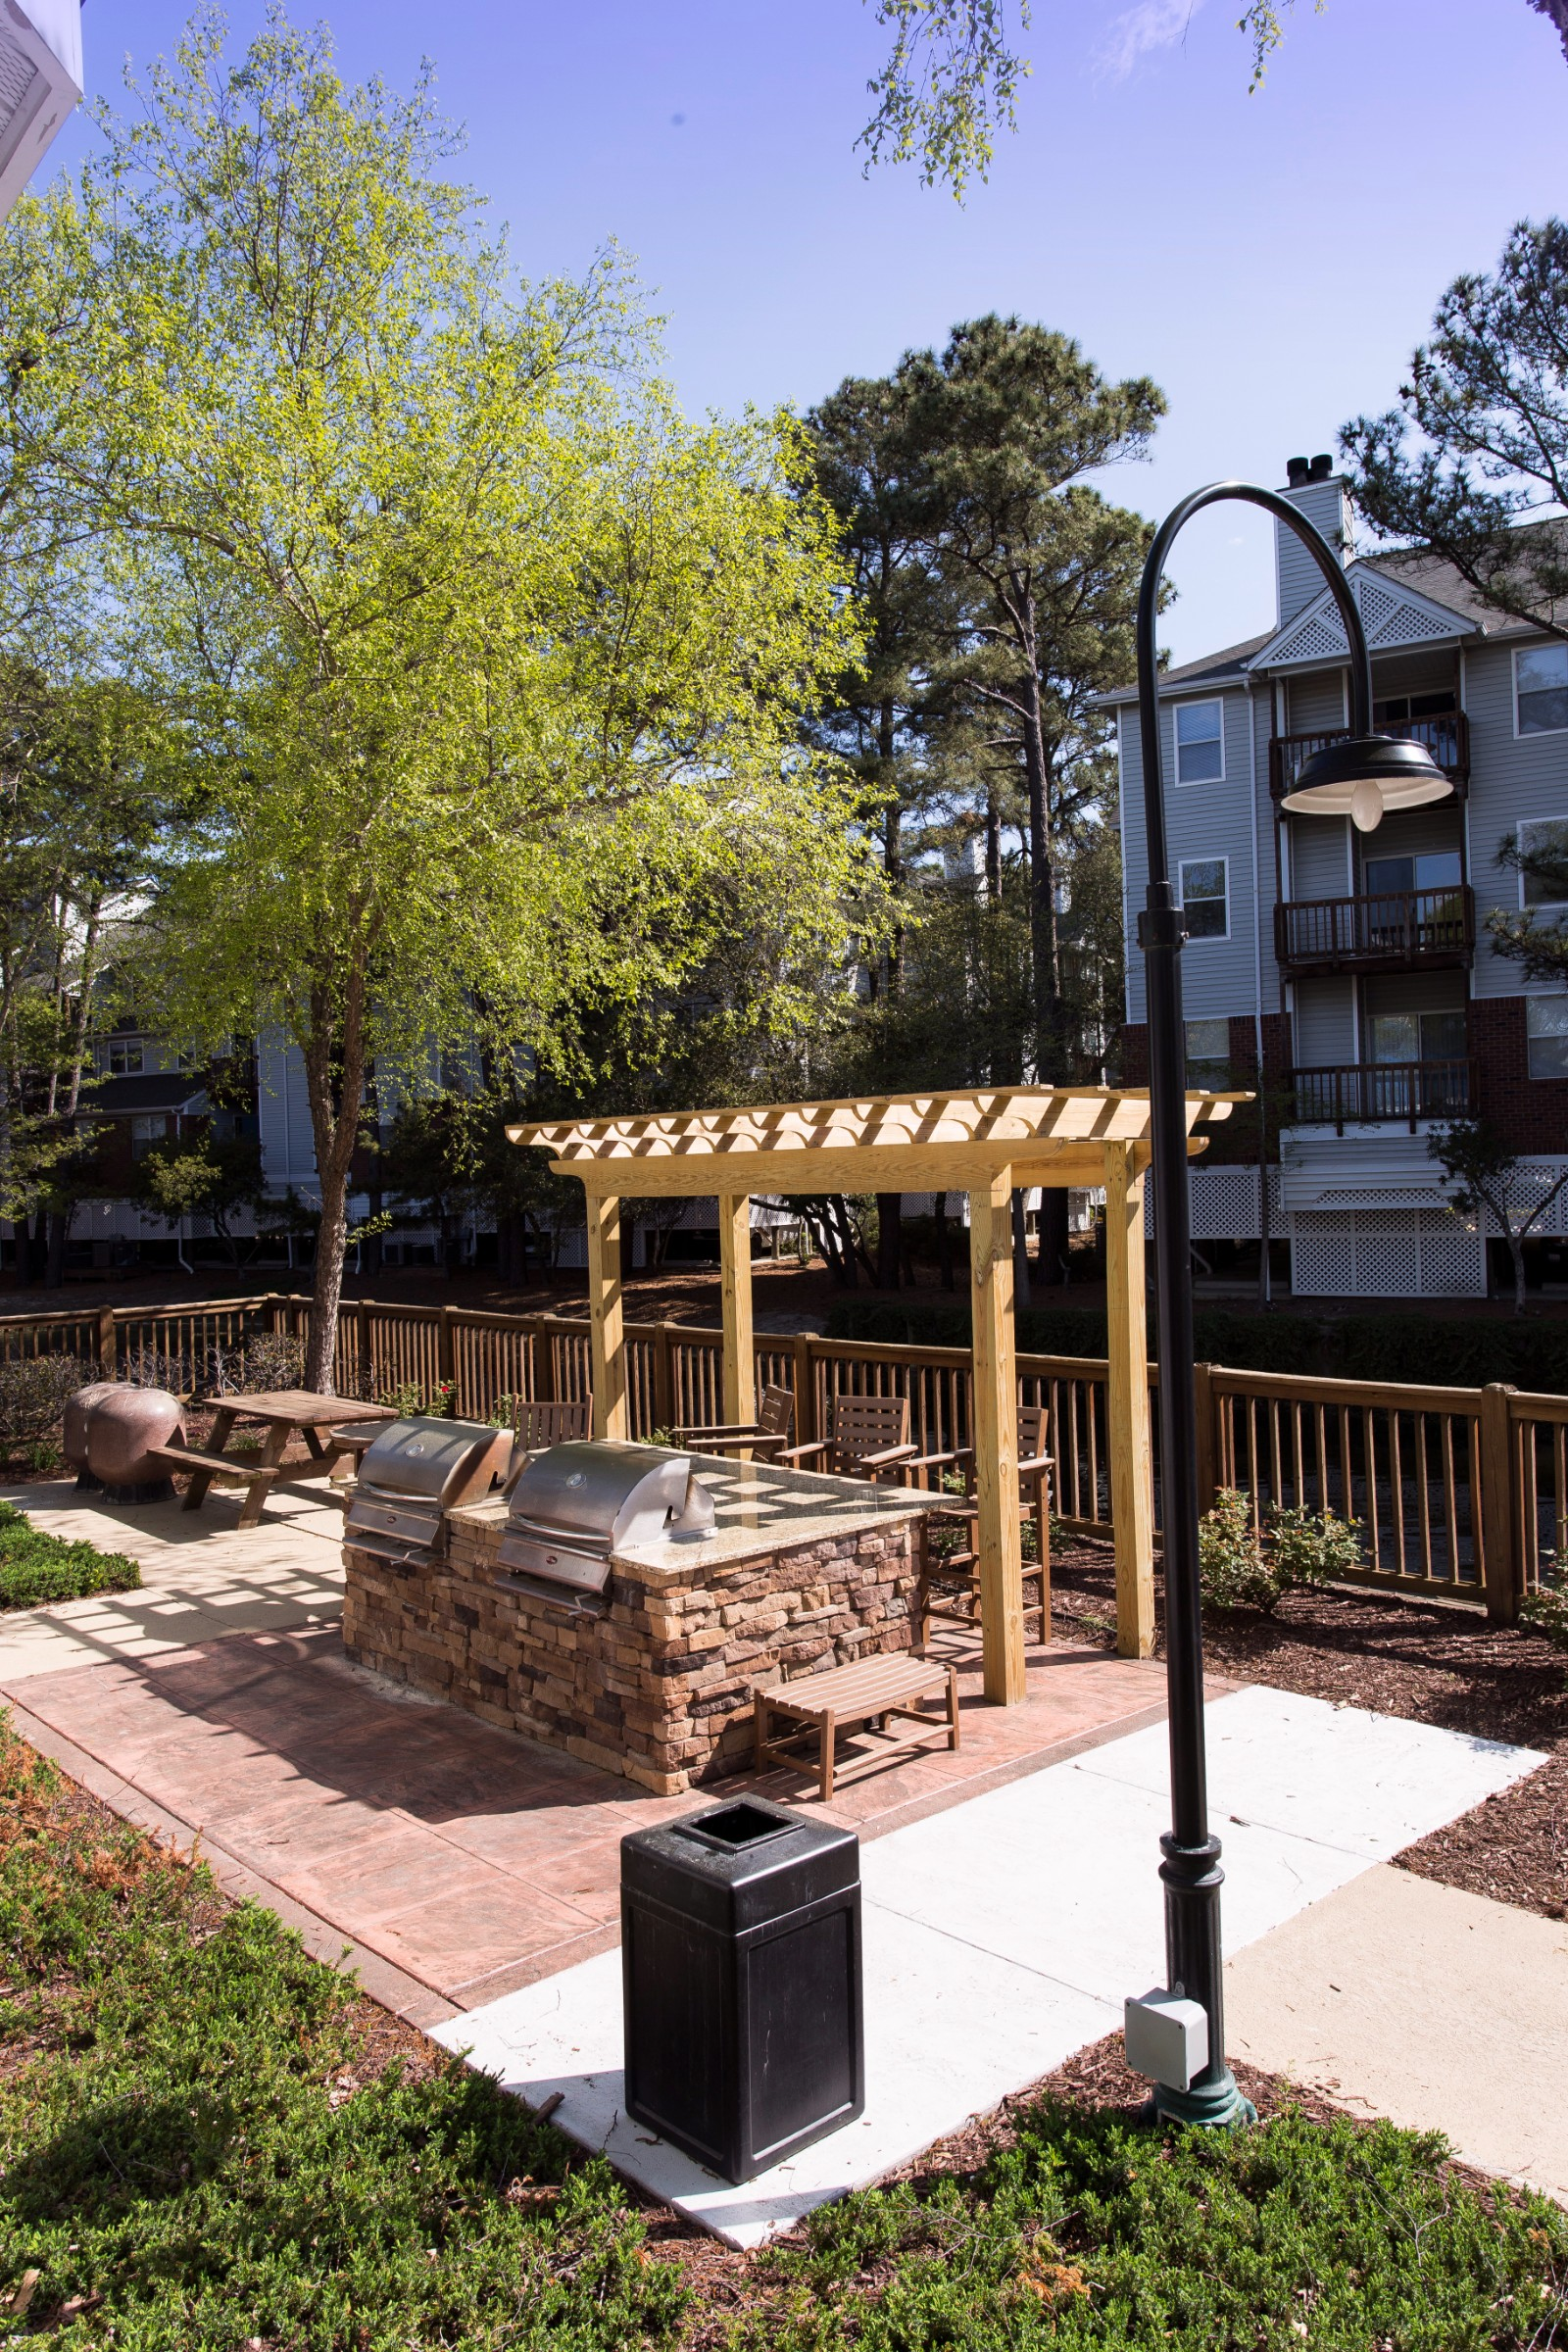 Outdoor Grilling Station Pavilion at Marina Shores Apartment Homes, Virginia Beach, Virginia